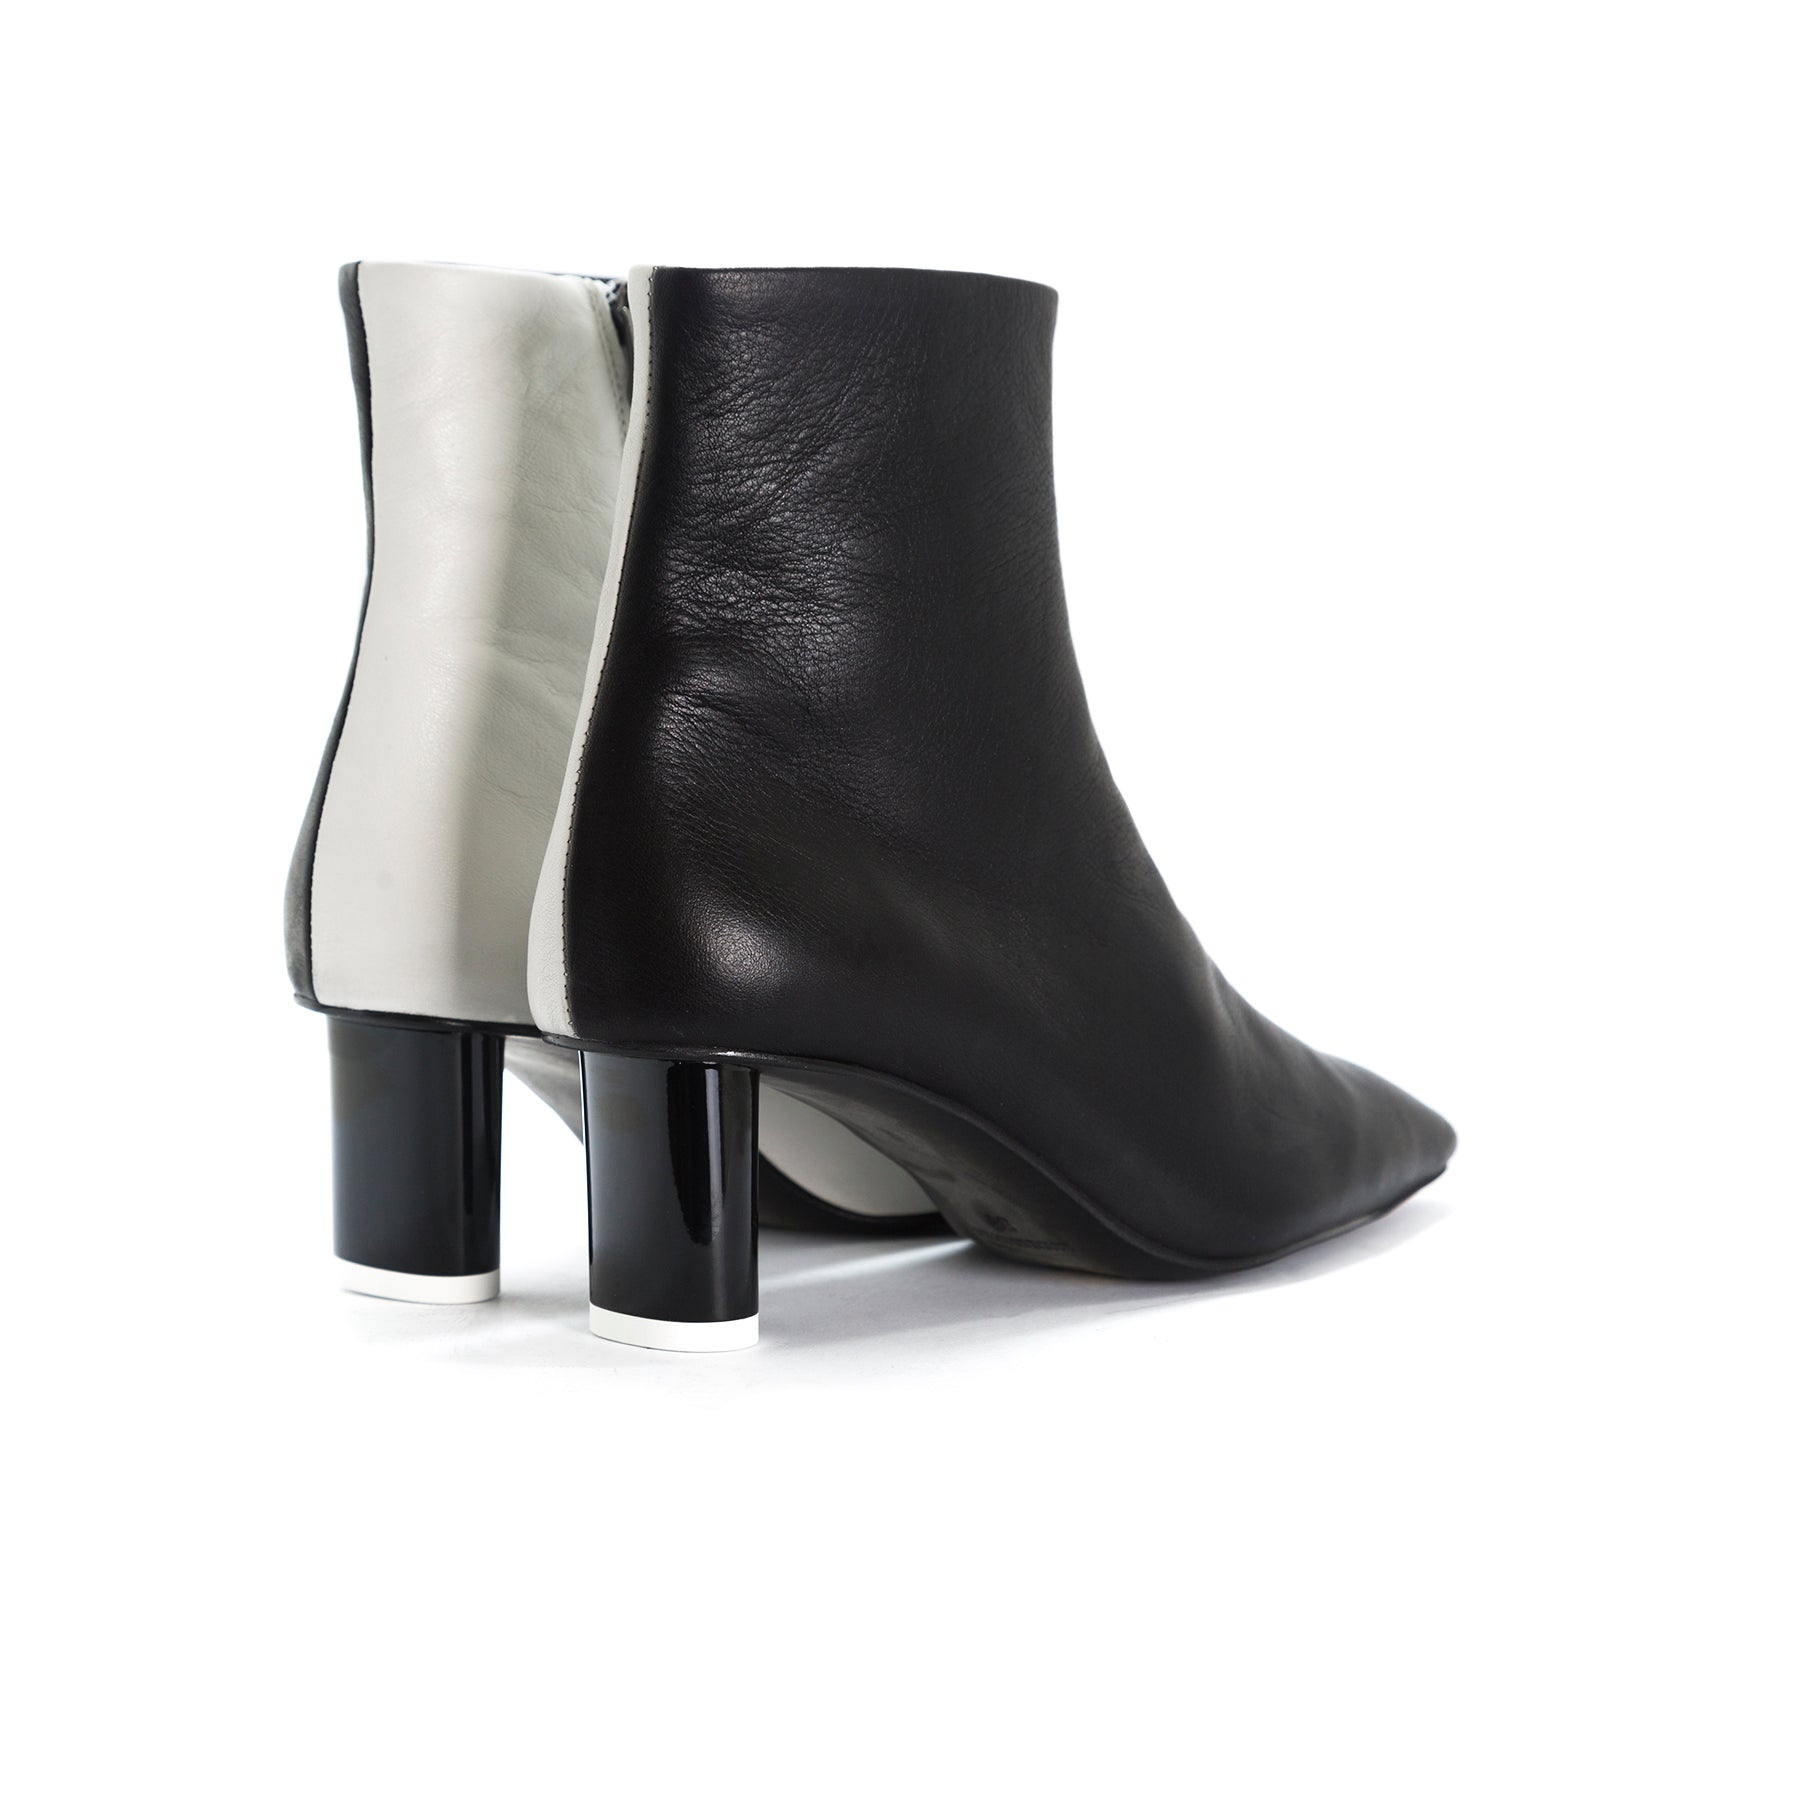 Abigail Black&White Leather Ankle Boots